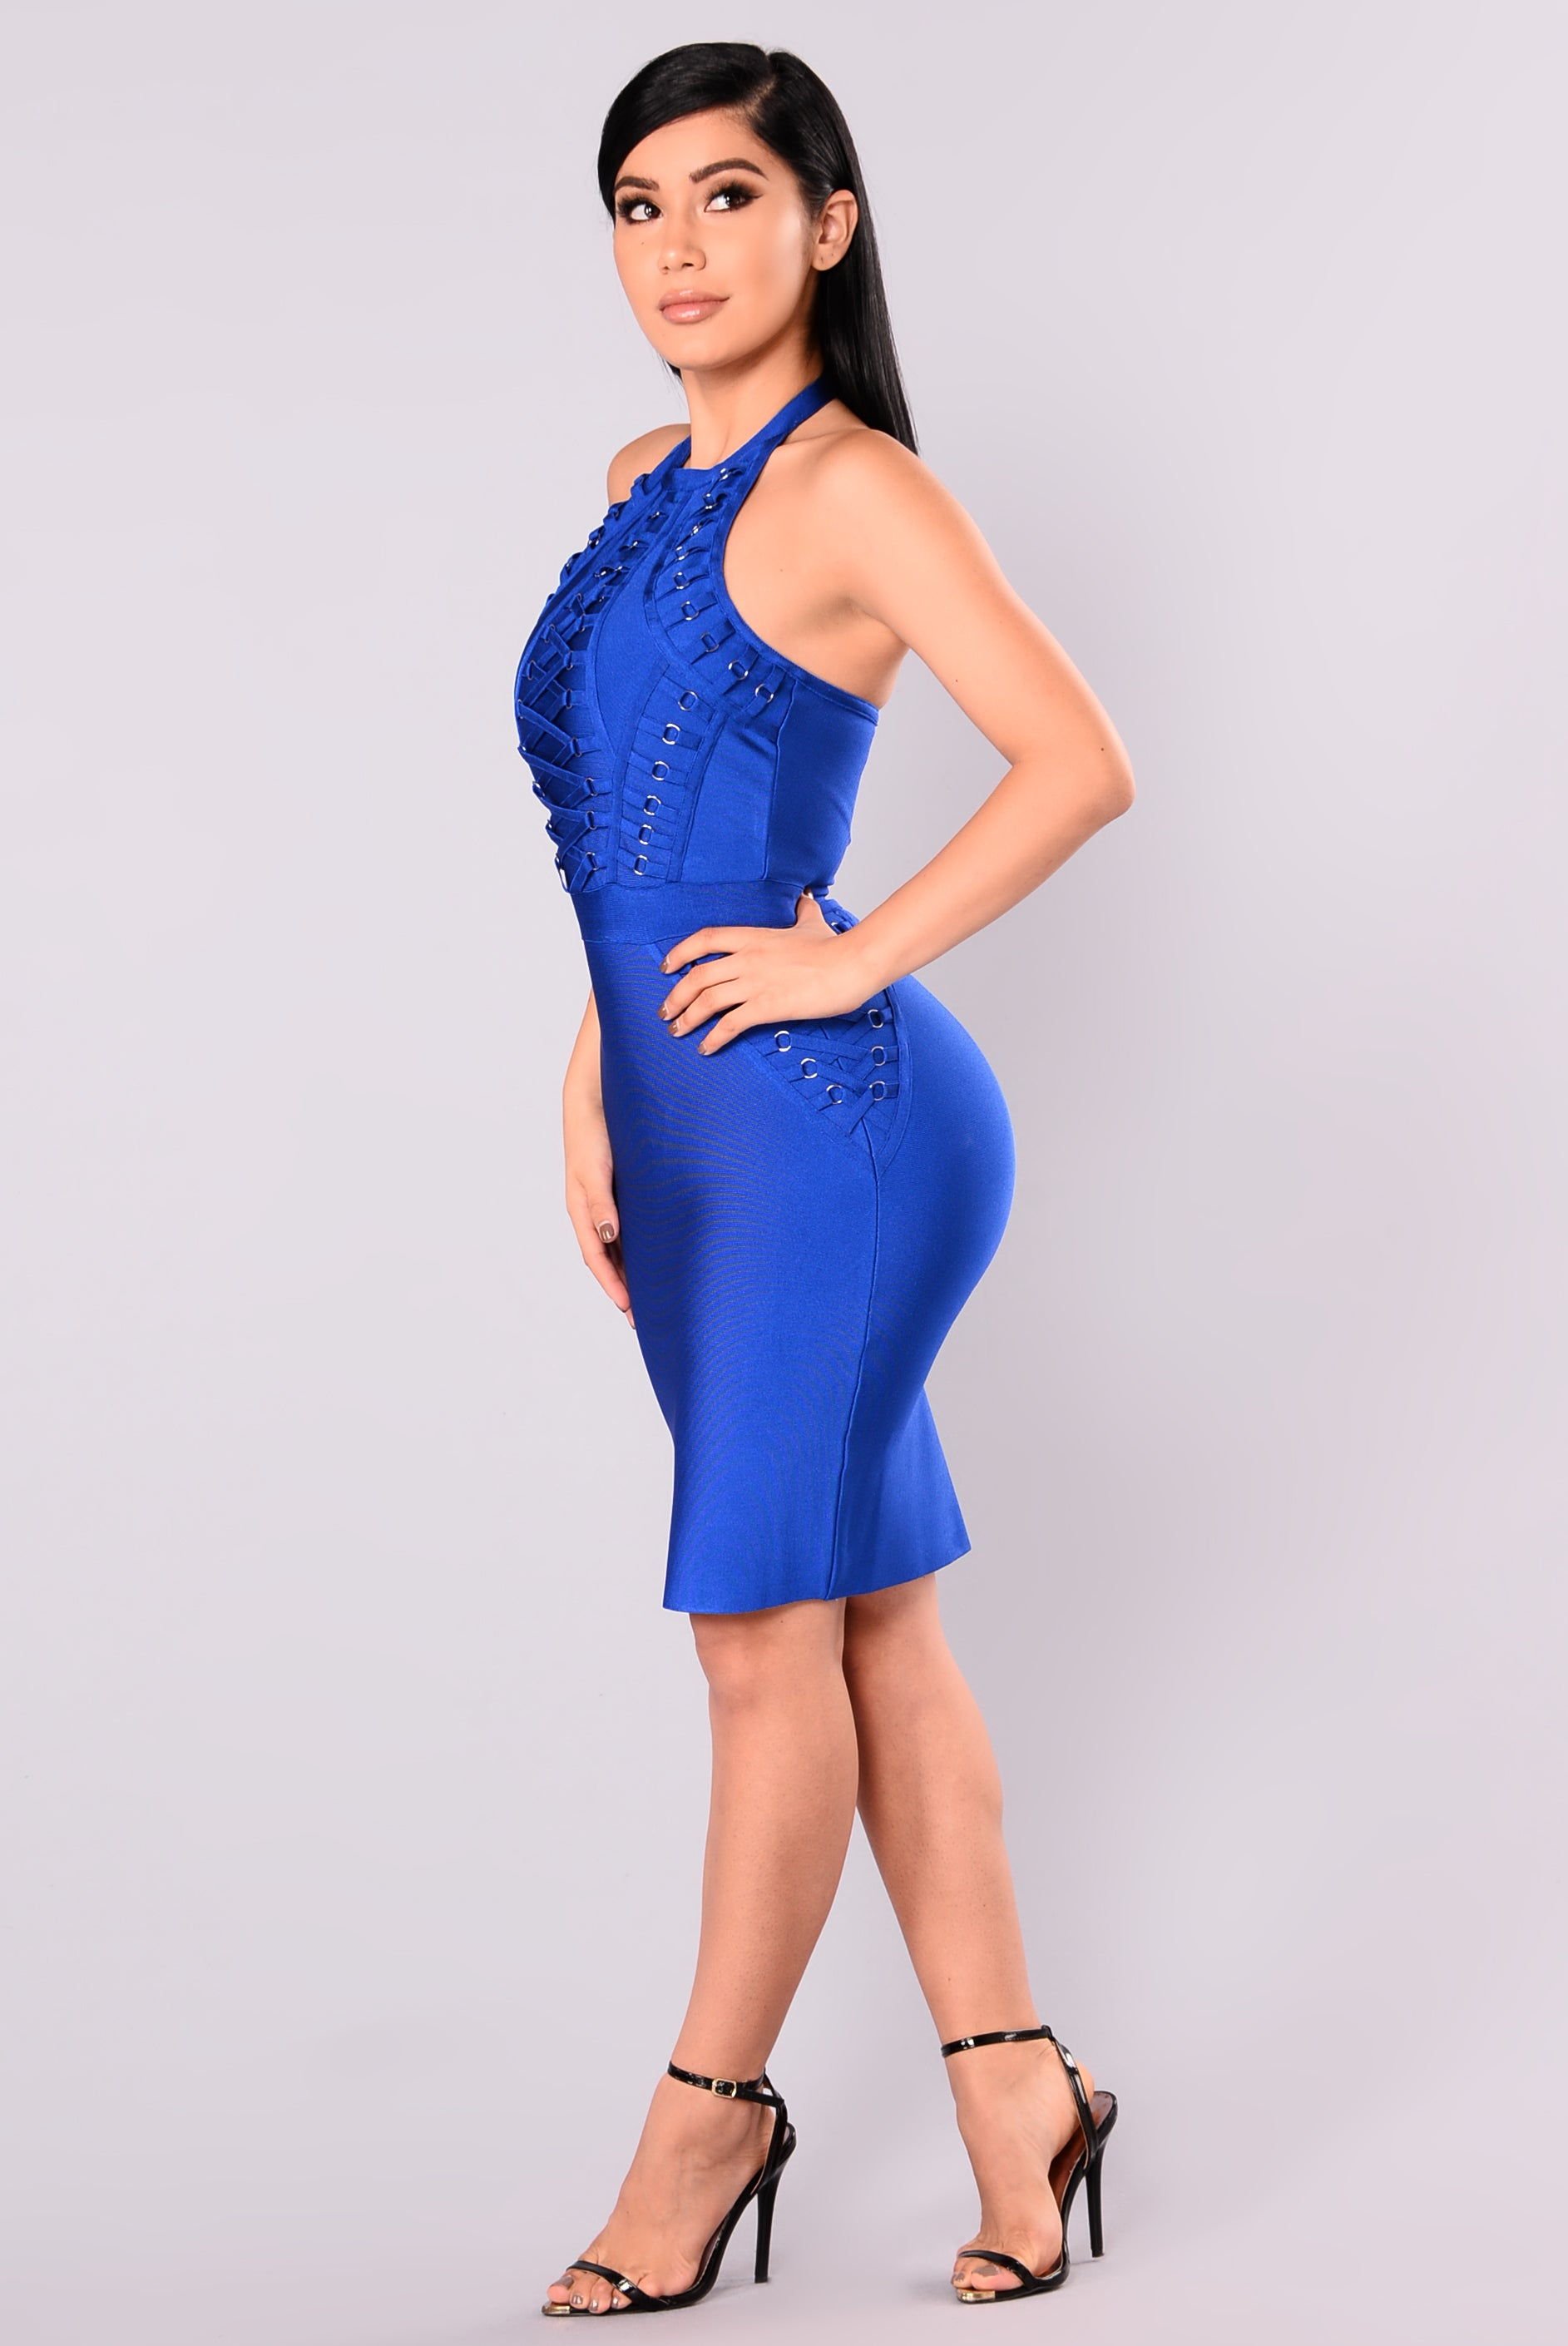 Royal Blue Bandage Dress \u2013 Fashion dresses